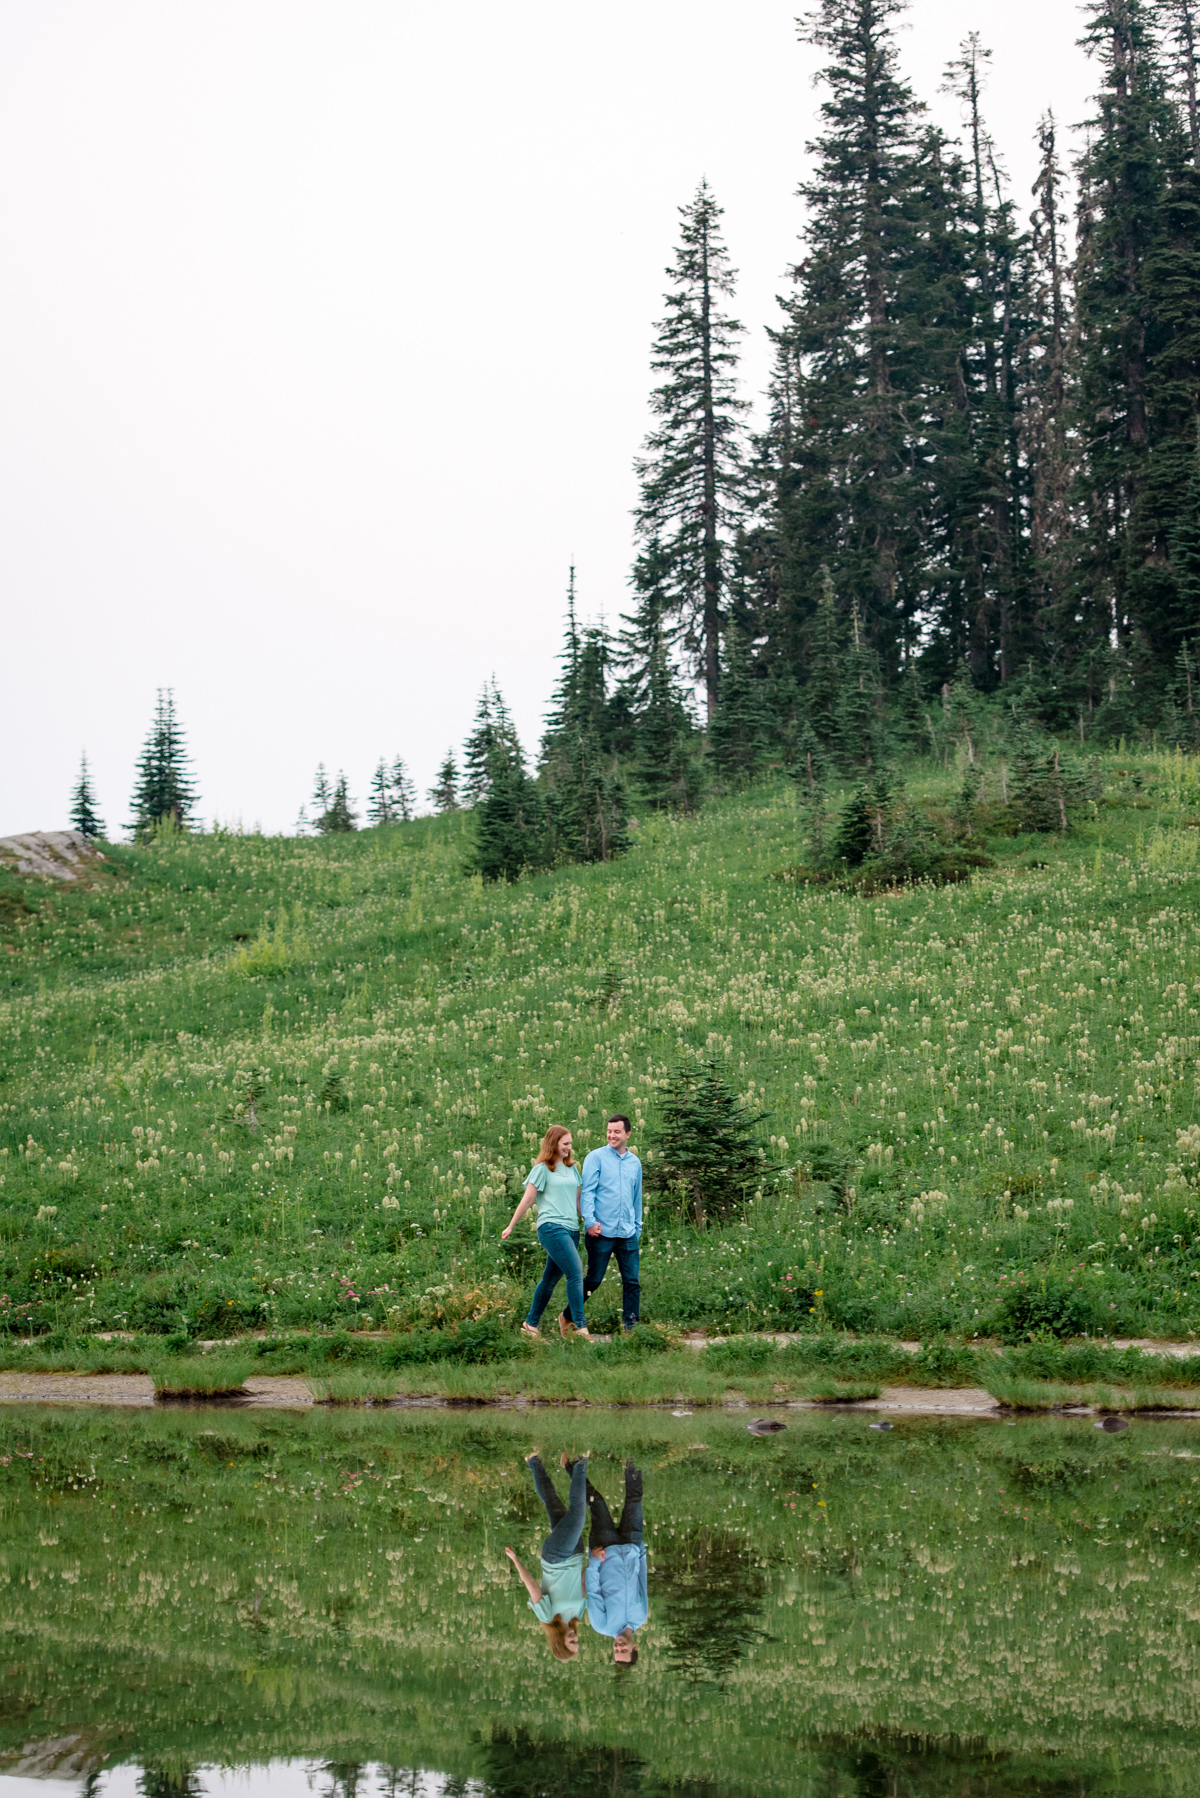 Andrew Tat - Documentary Wedding Photography - Tipsoo Lake - Mount Rainier National Park, Washington - Erin & Robert - 04.JPG